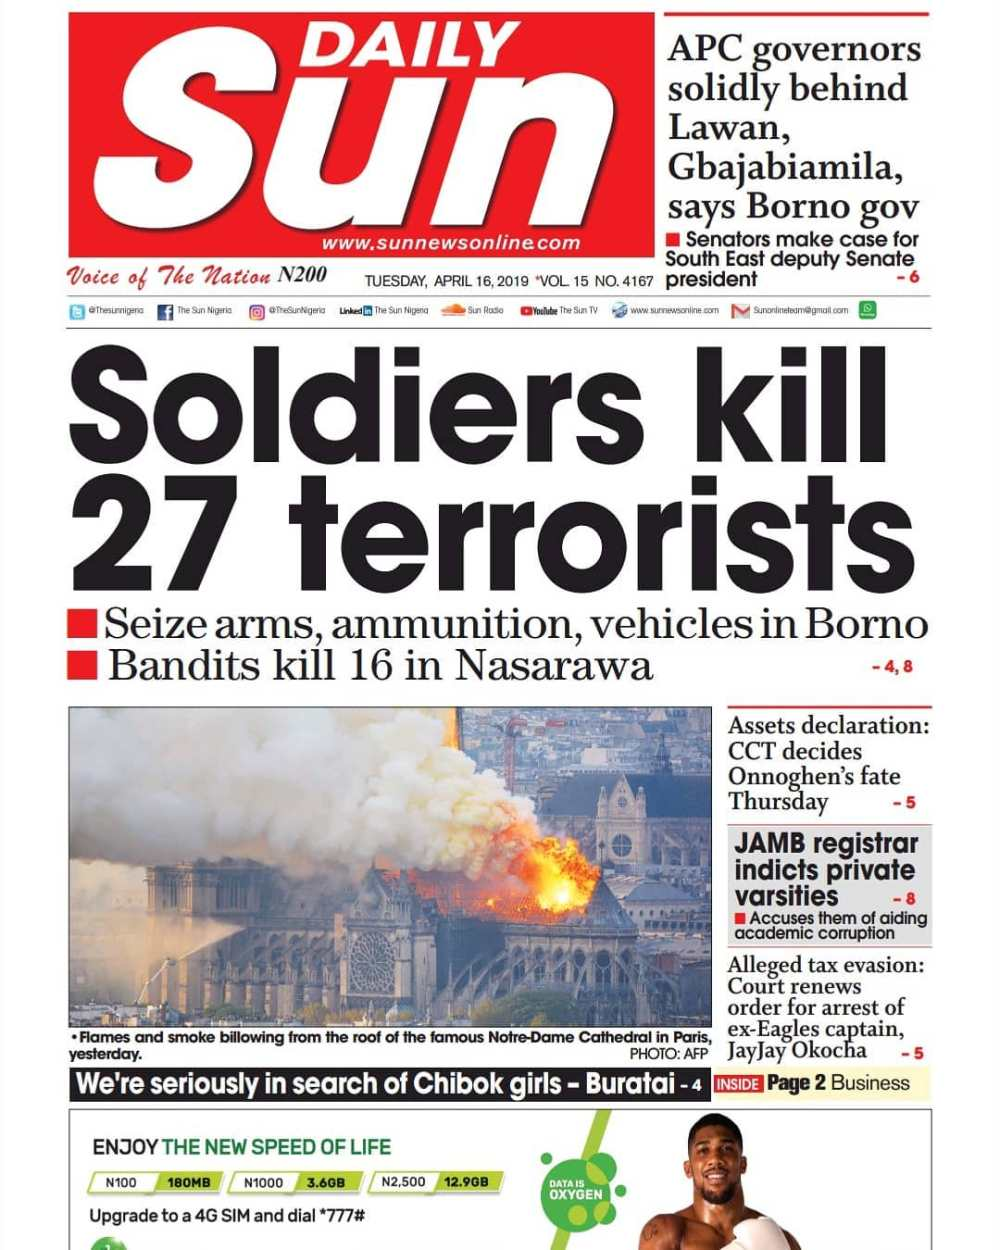 Soldiers kill 27 terrorists